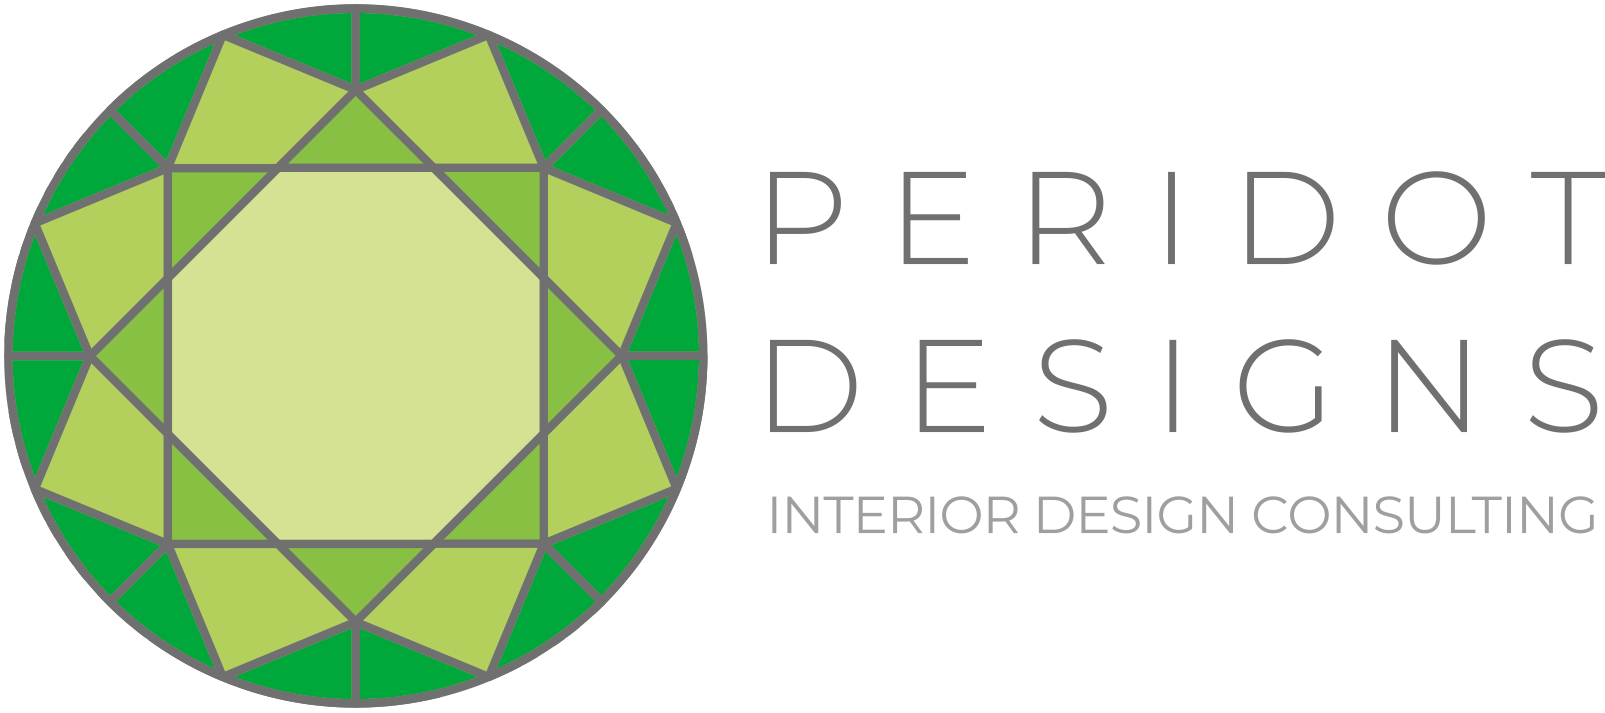 Peridot designs_Advertiser_Logo